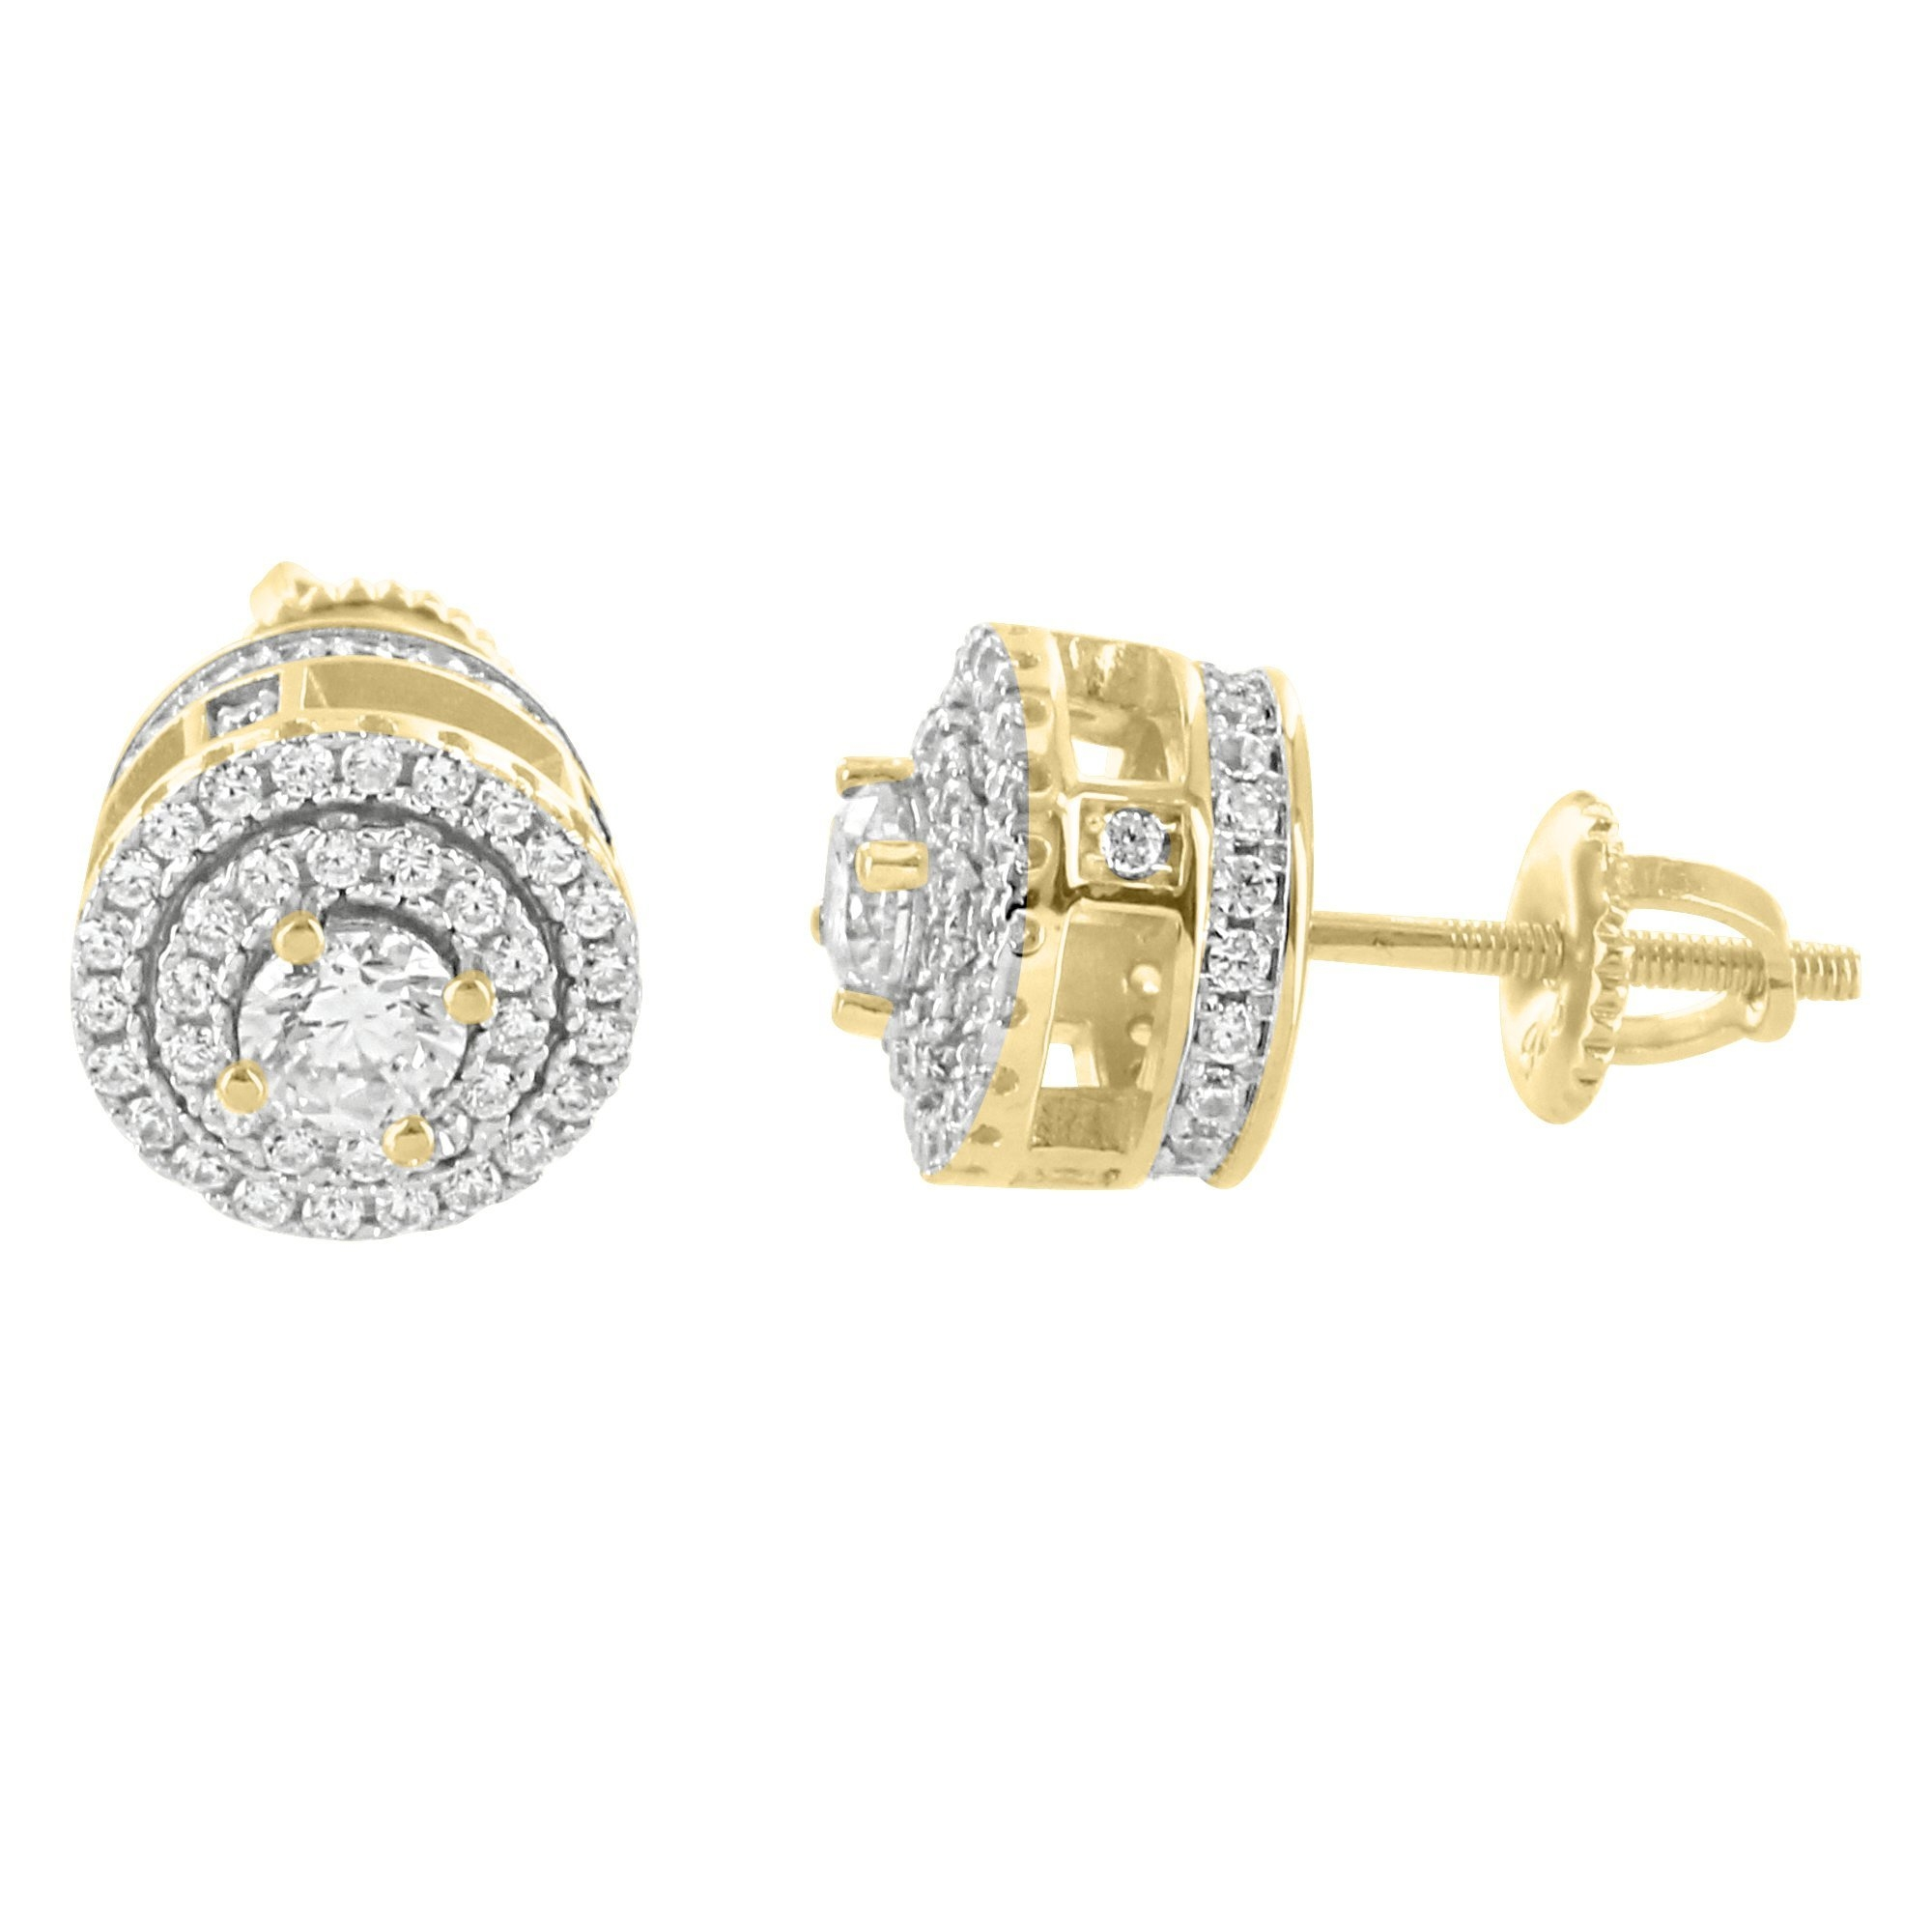 Image of 14k Gold Finish Solitaire Prong Side  Silver Earrings